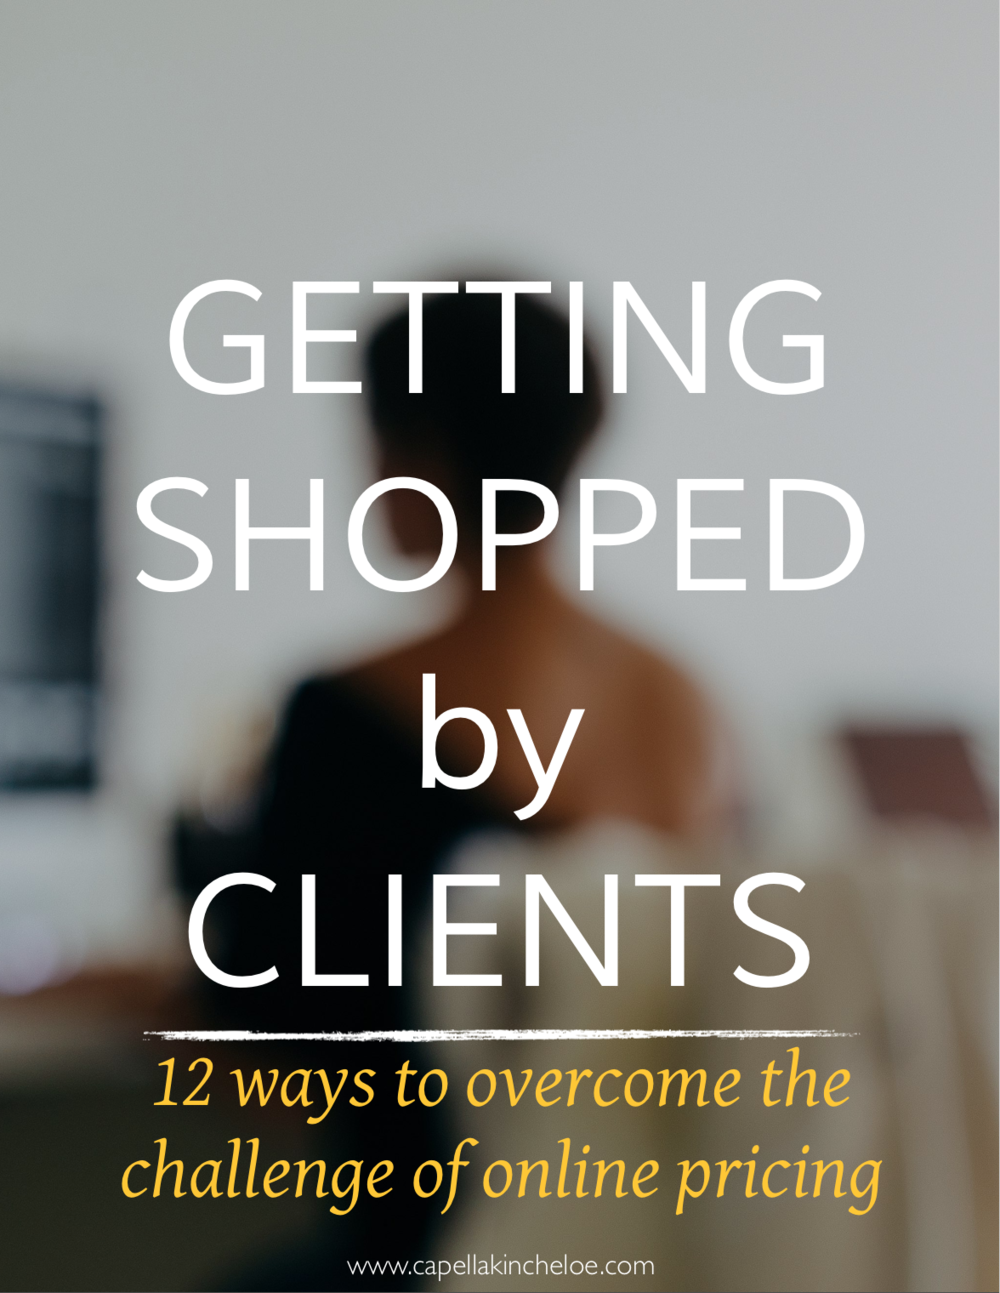 getting shopped by clients 12 ways to overcome online pricing.png